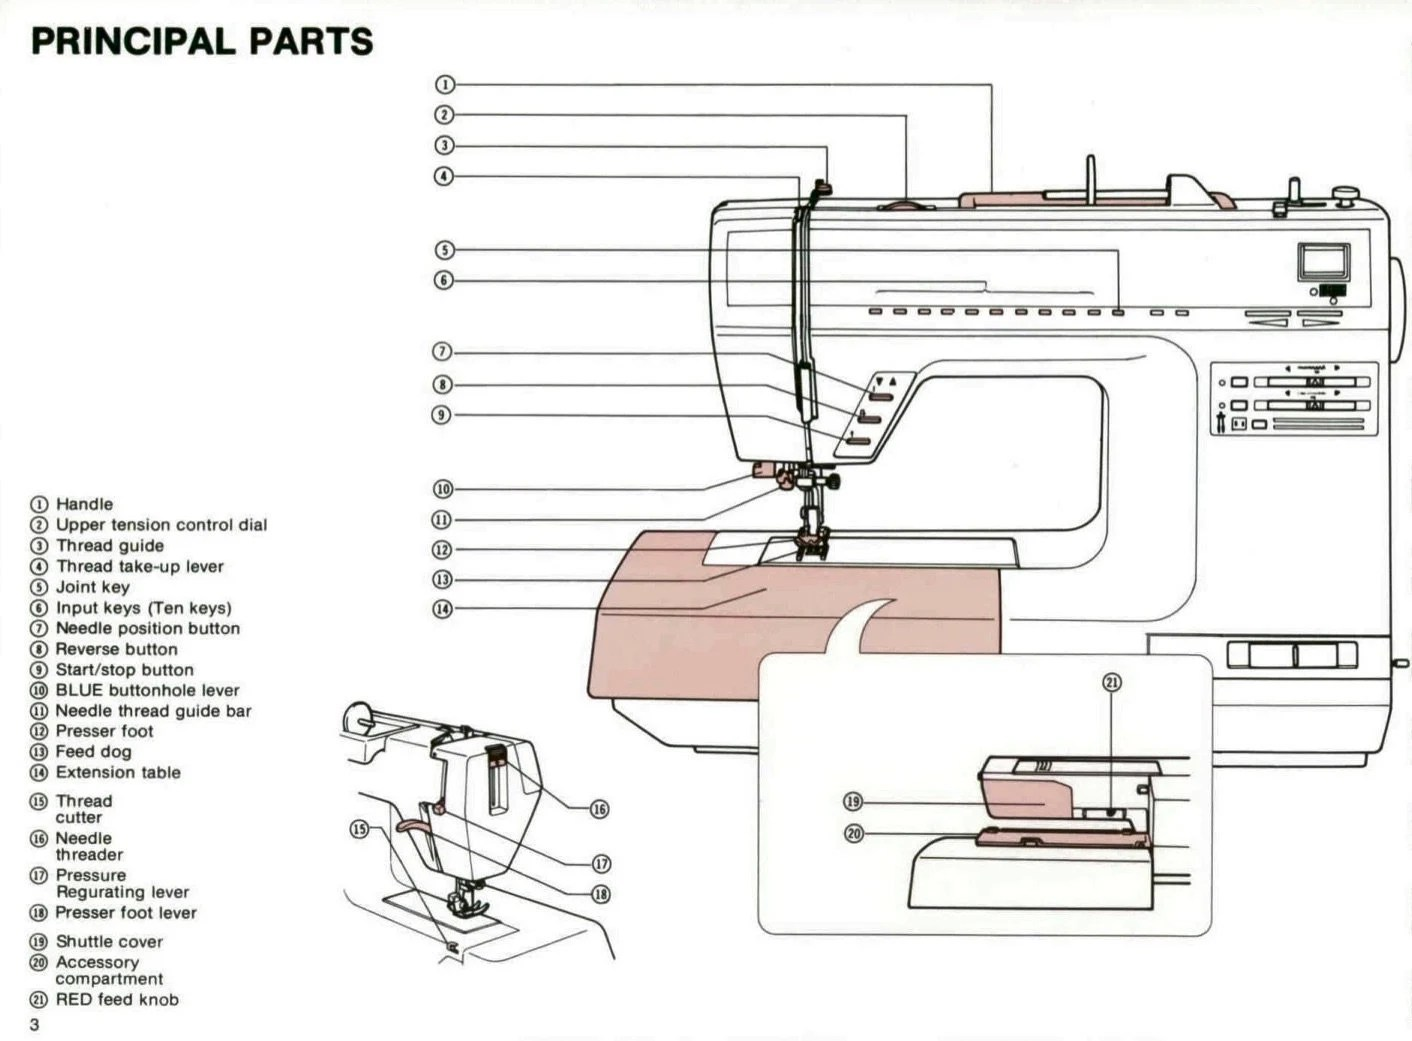 BROTHER 870 Compal Galaxie Instructions and Service manual